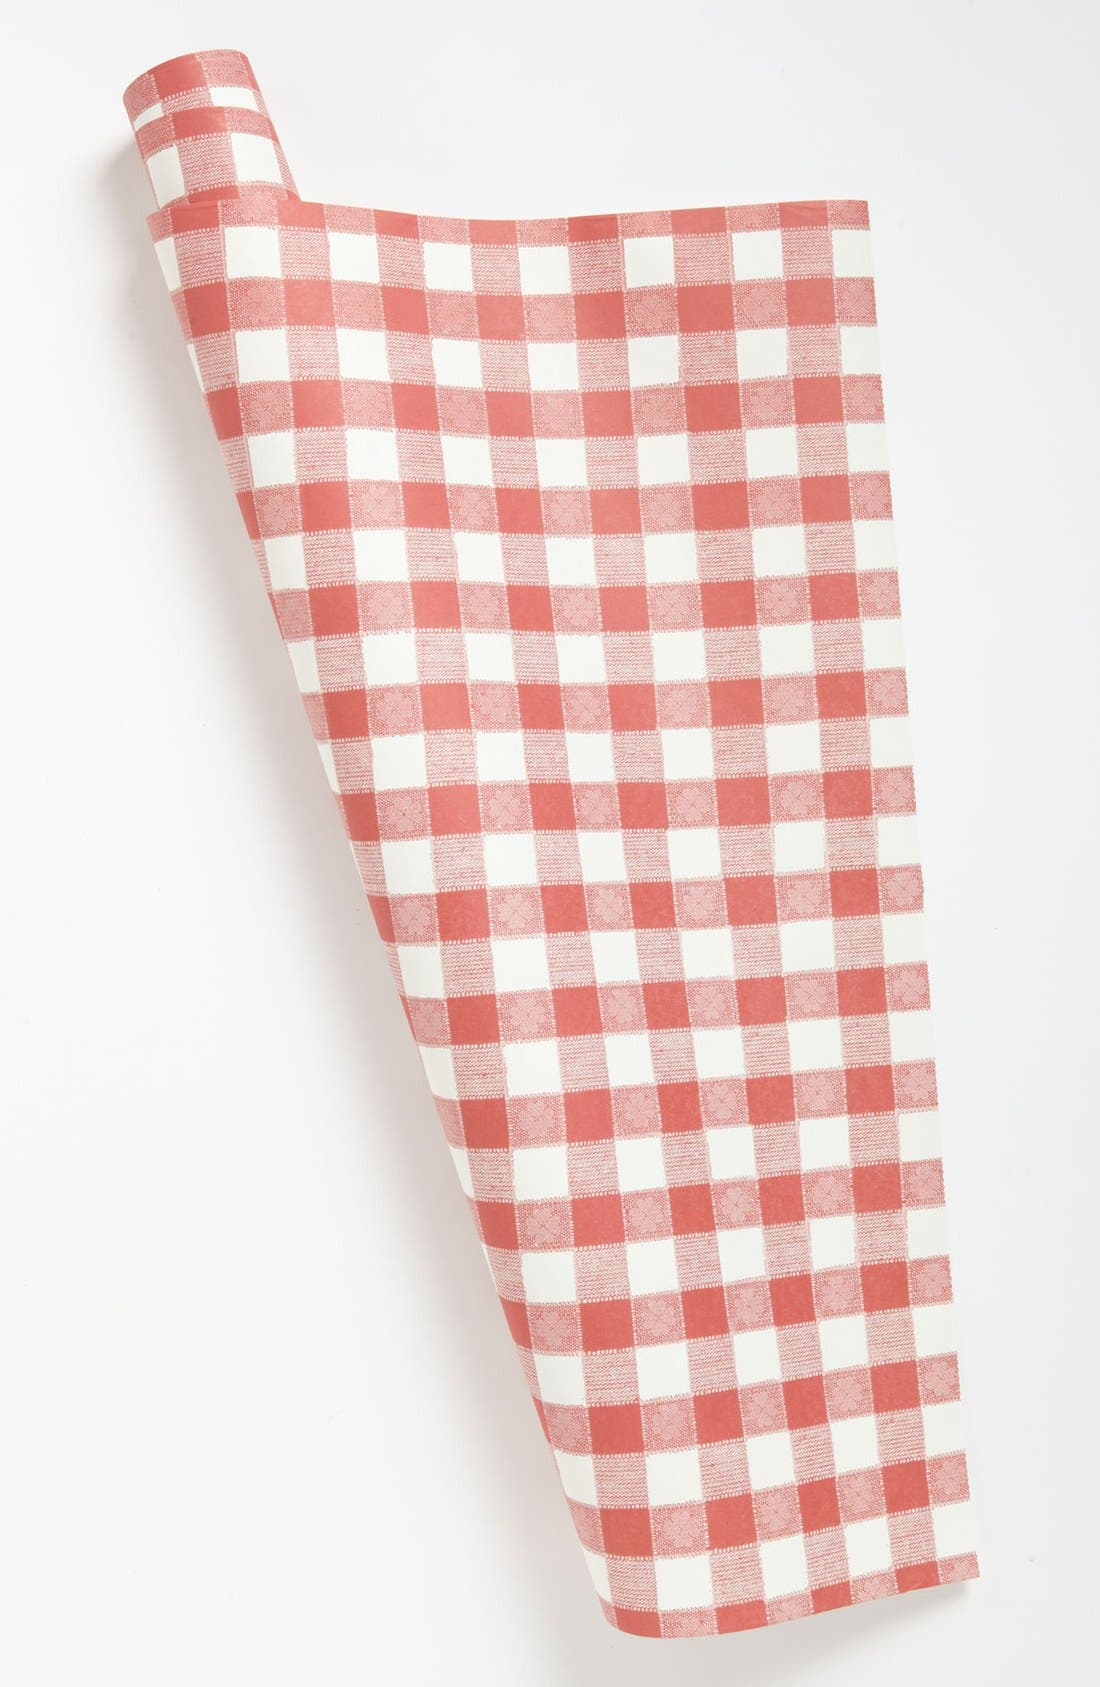 Alternate Image 1 Selected - Kitchen Papers by Cake 'Italian Checked' Paper Table Runner